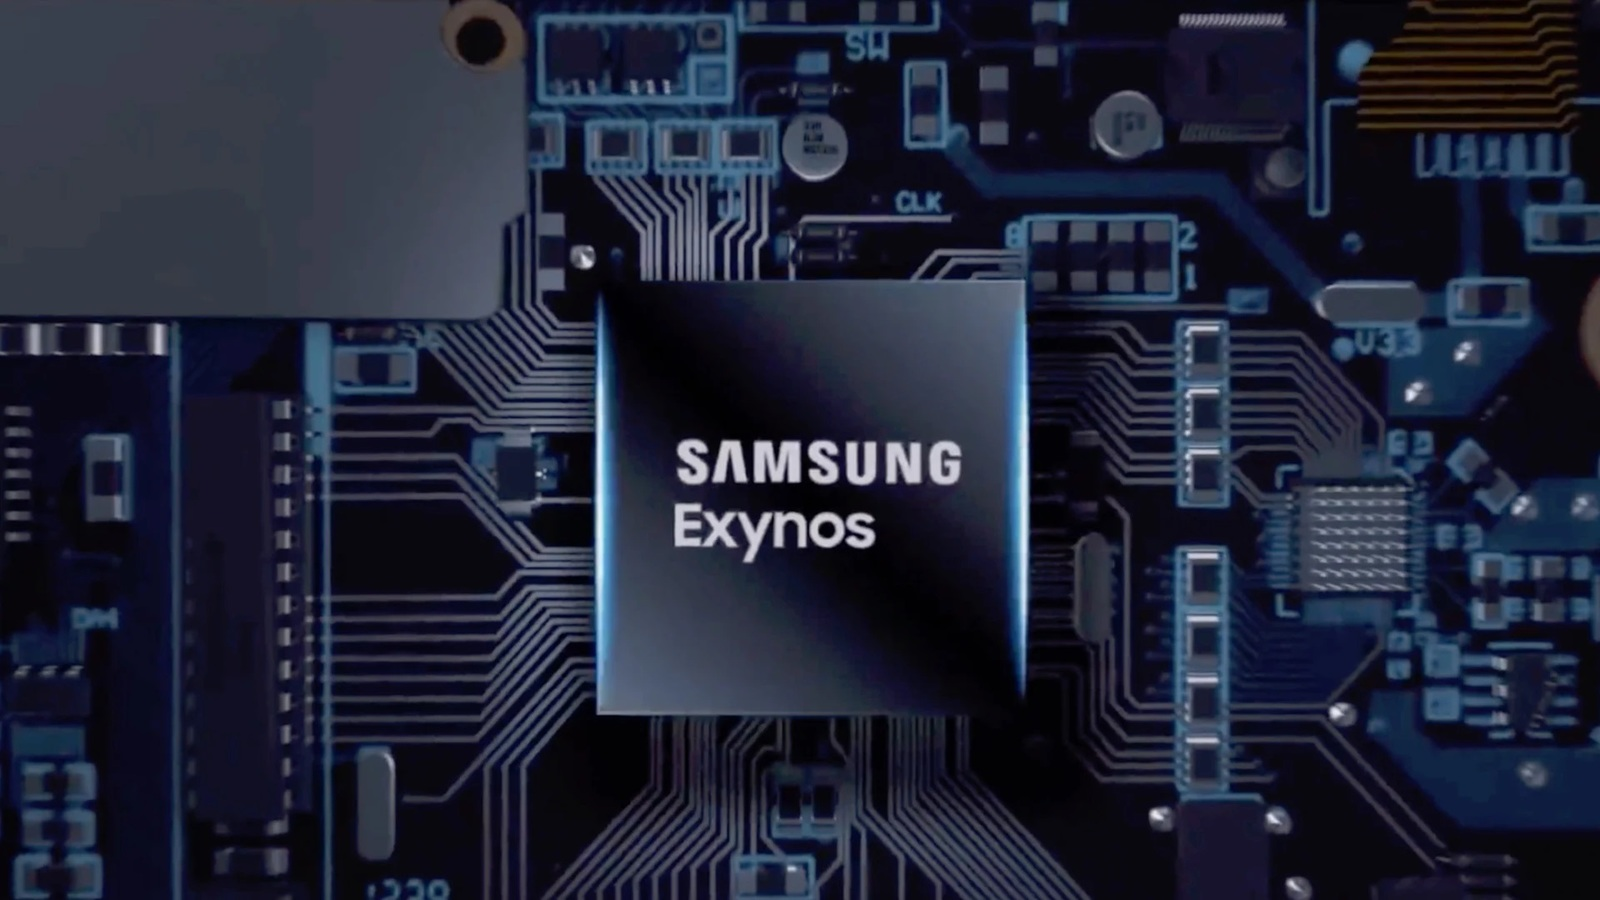 exynos 850 configurations, exynos 850 phones, galaxy a21s